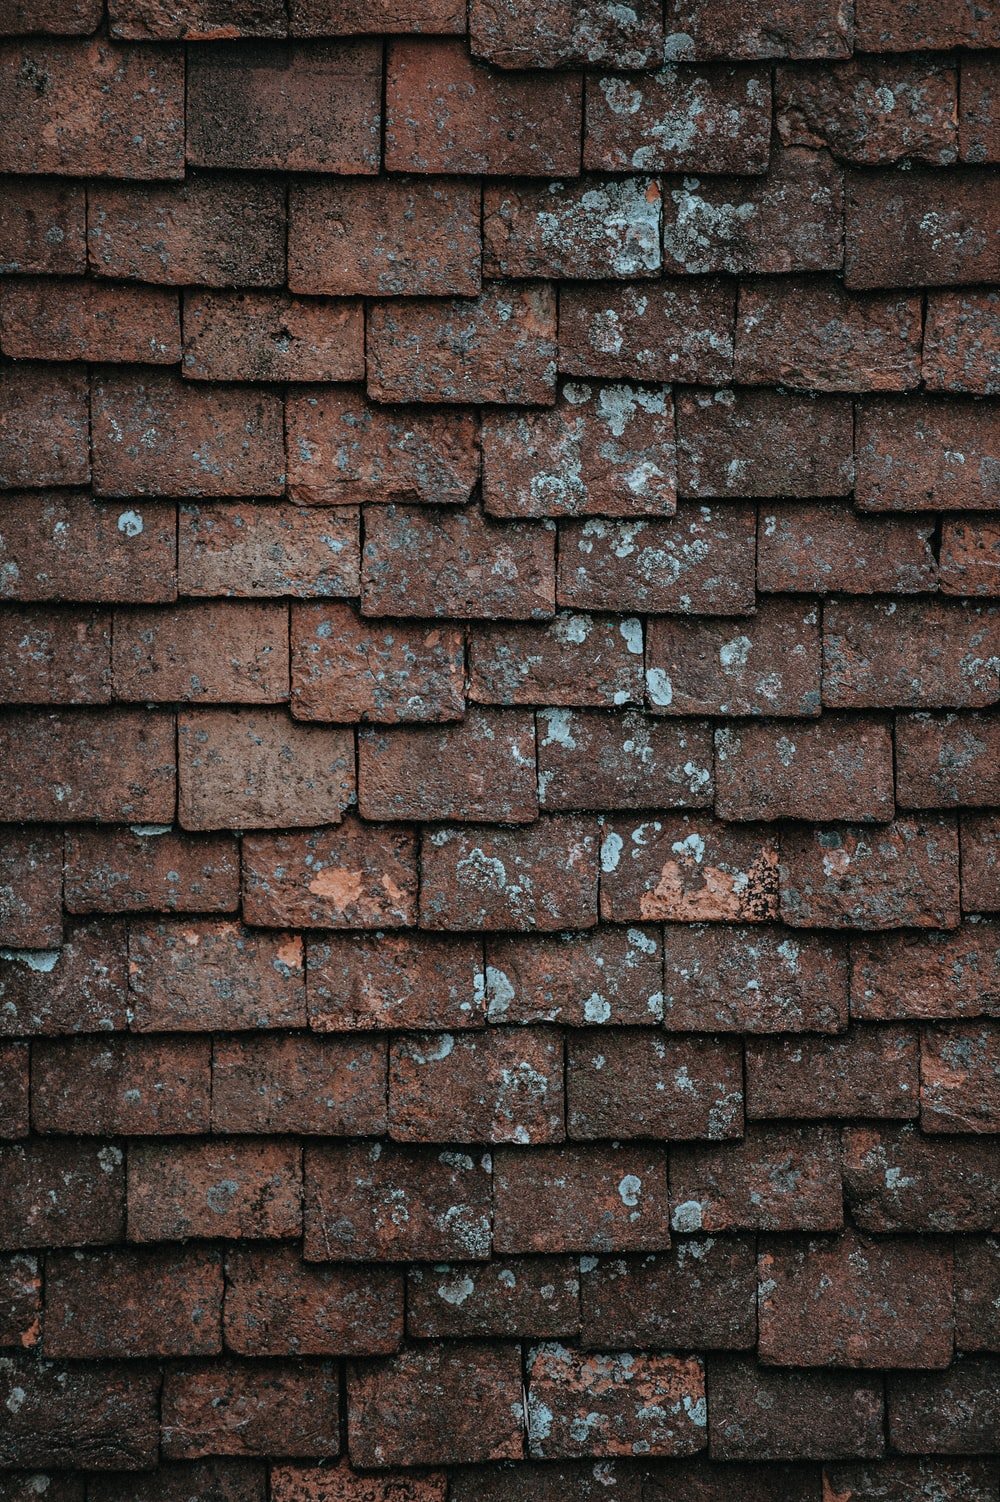 closeup photography of brown and gray concrete bricks